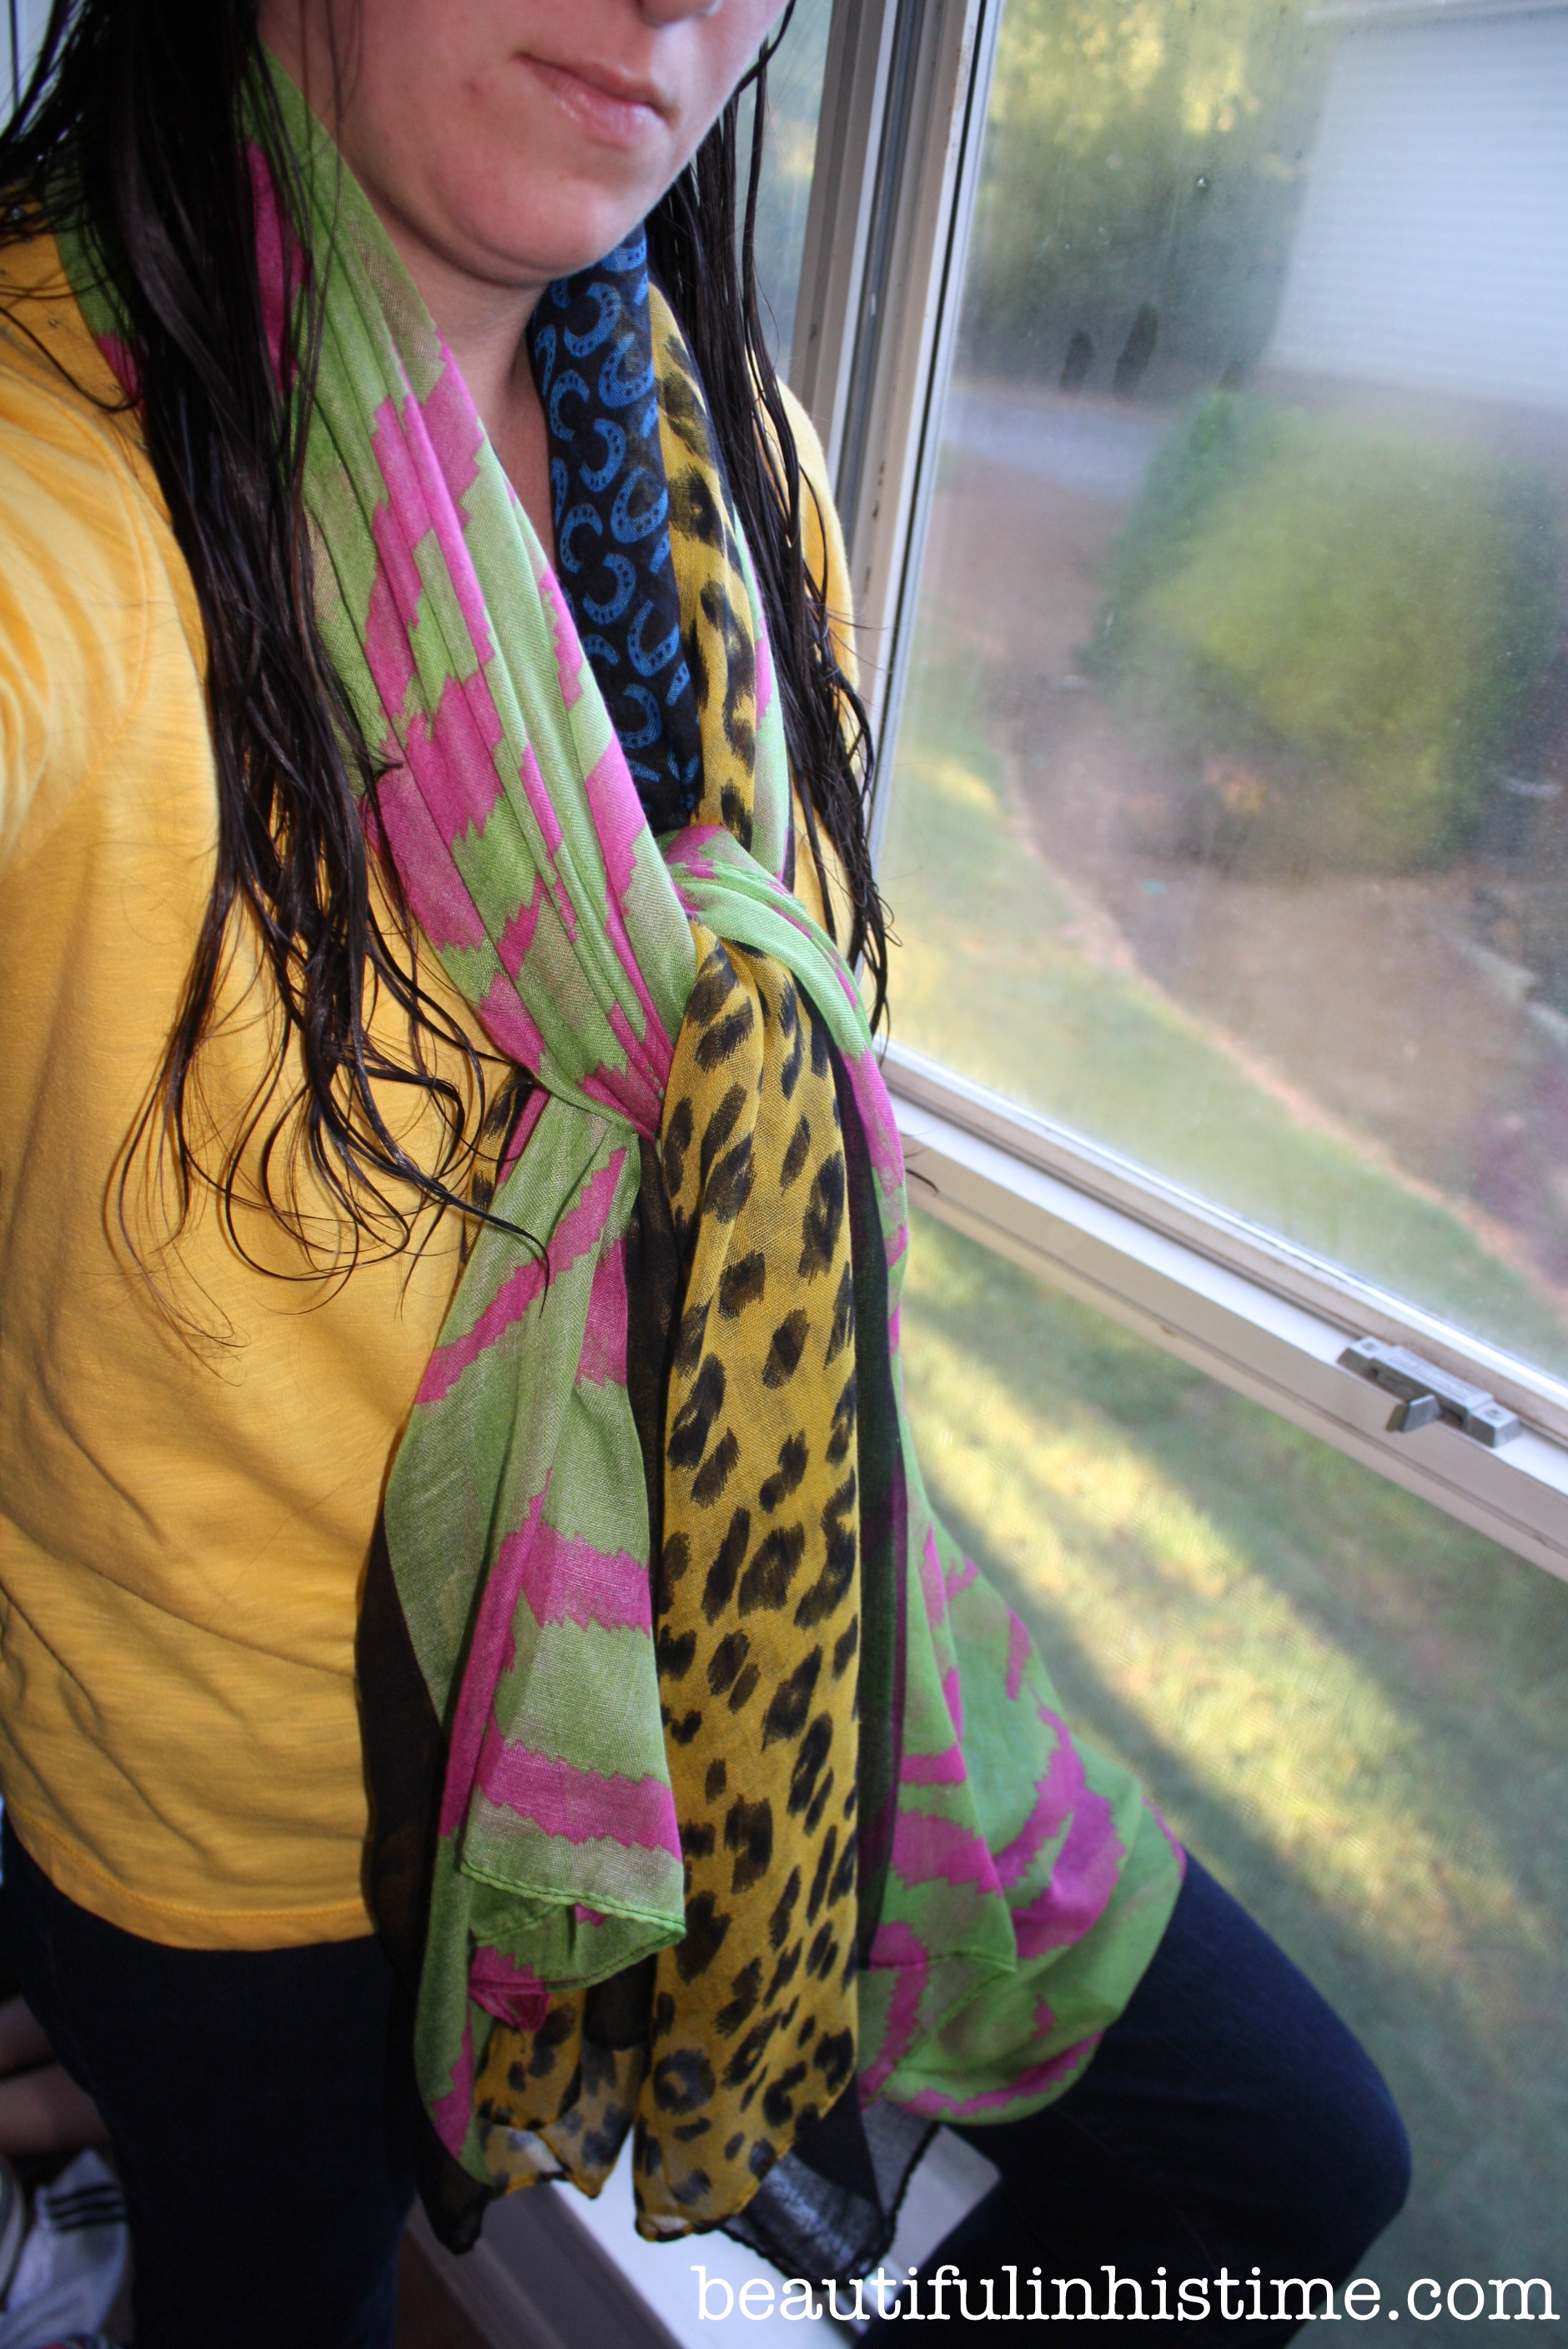 long hair, straight stitching, and free scarves {a post about God's provision, even in the unnecessary things}